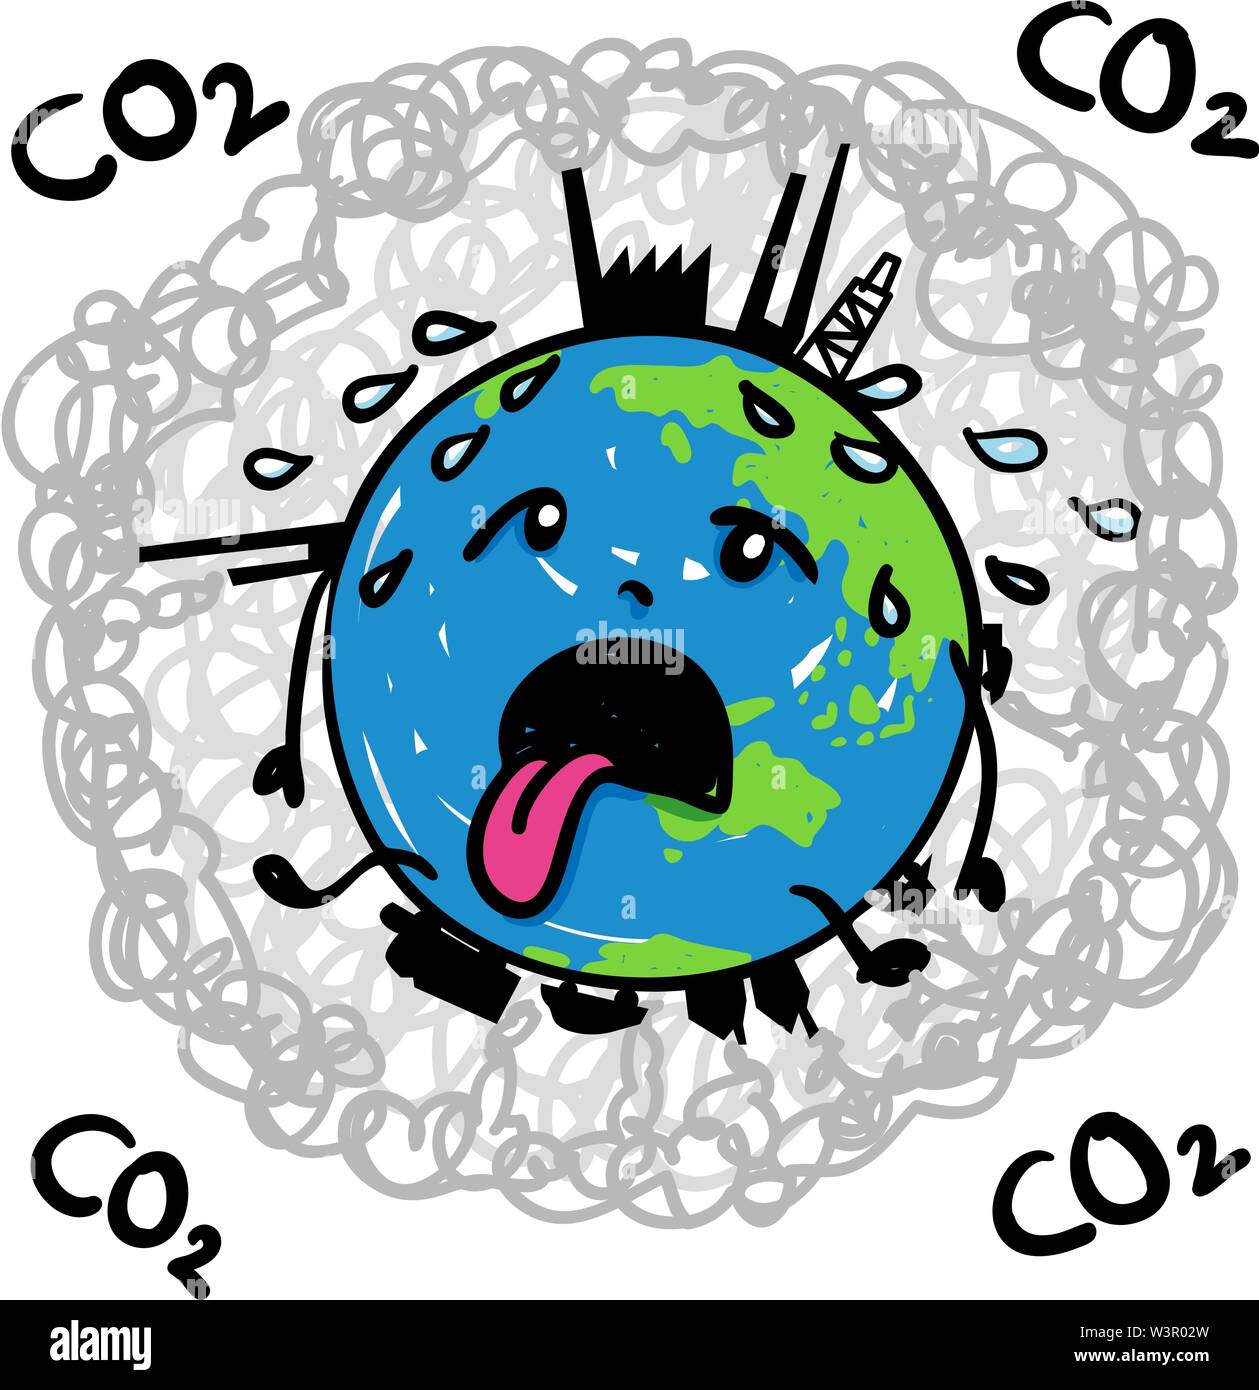 Earth globe suffering under global warming melting away in midst of carbon dioxide - hand drawn vector cartoon - Stock Image